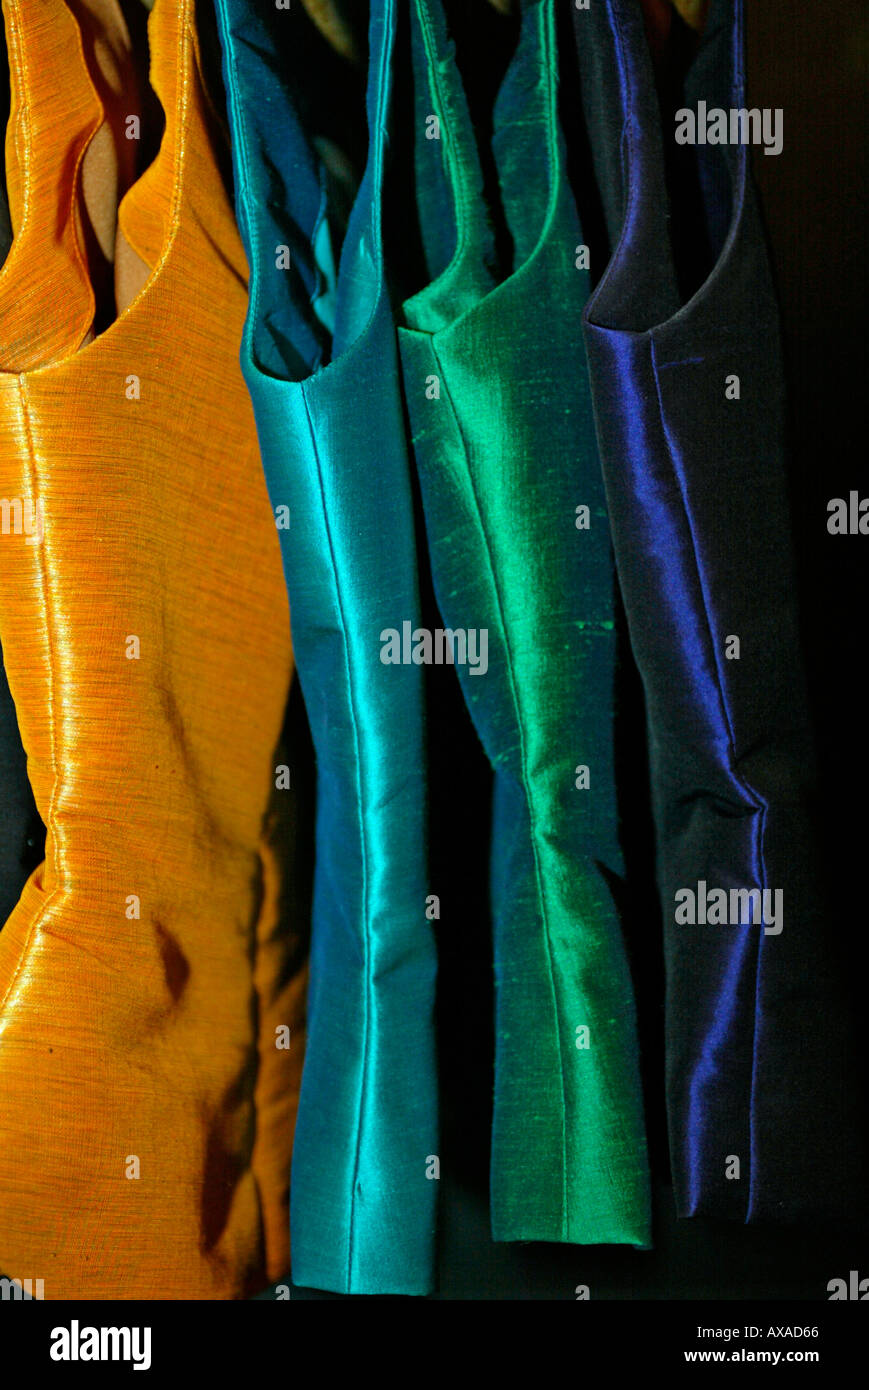 Coloured bodices in silk factory showroom Chiang Mai north Thailand - Stock Image